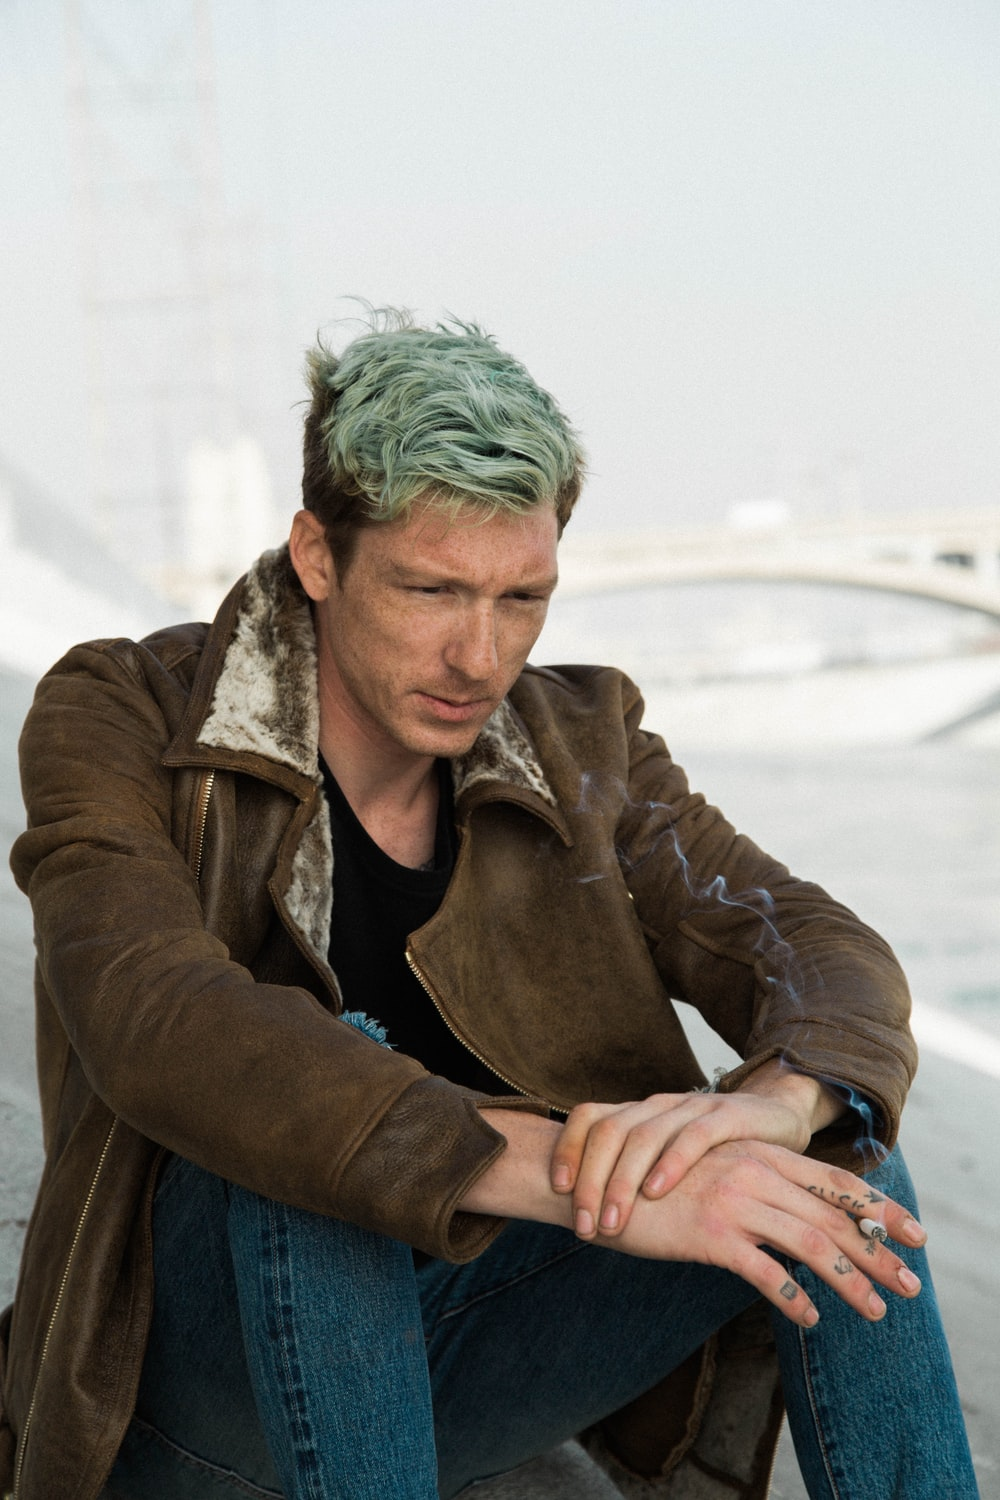 man with green hair in black shirt and brown coat sits on brown sand near white suspension bridge